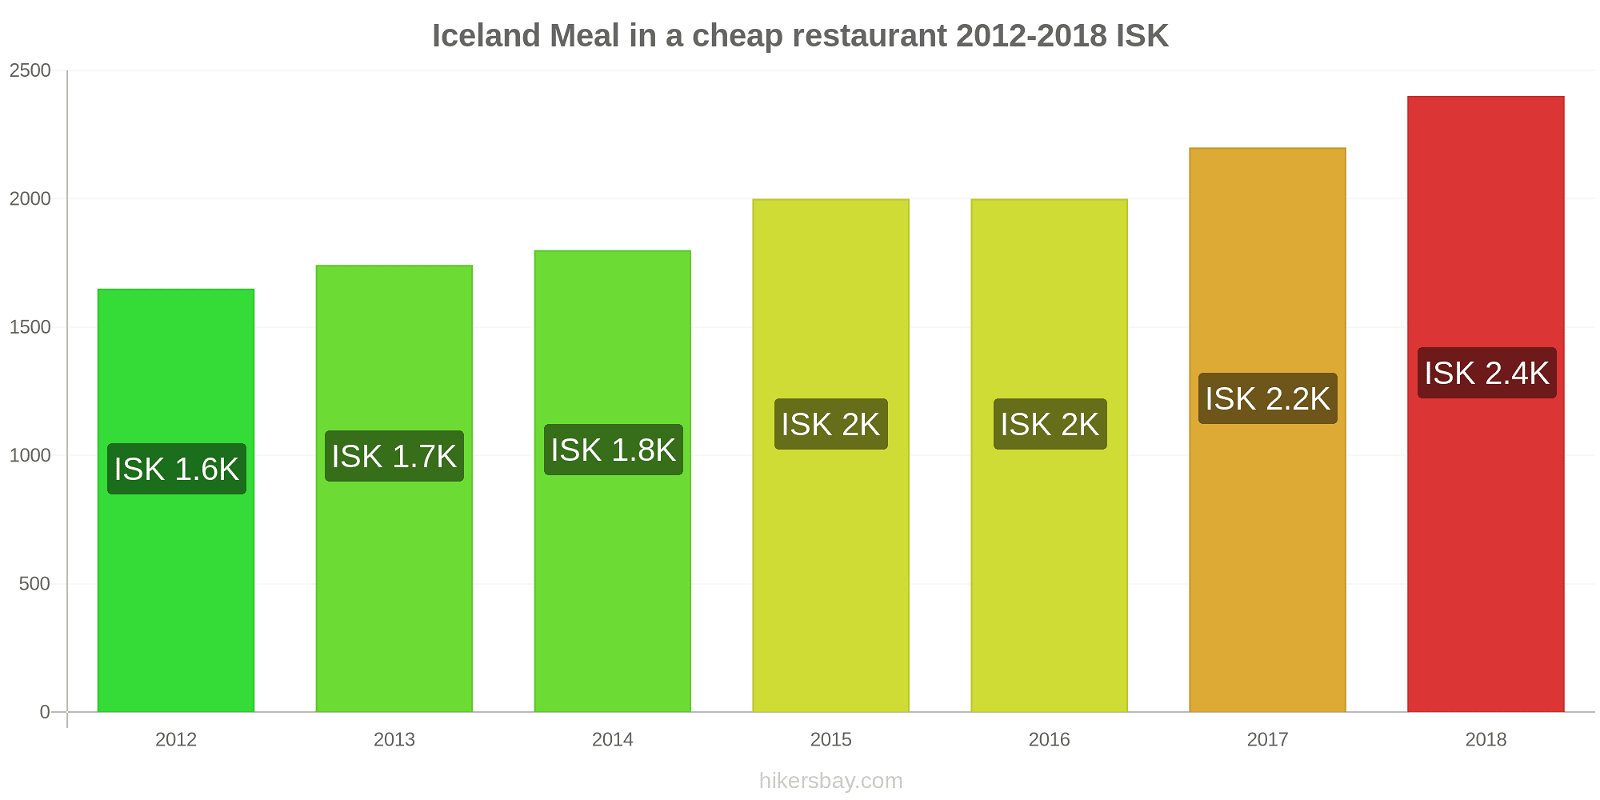 Iceland price changes Meal in a cheap restaurant hikersbay.com